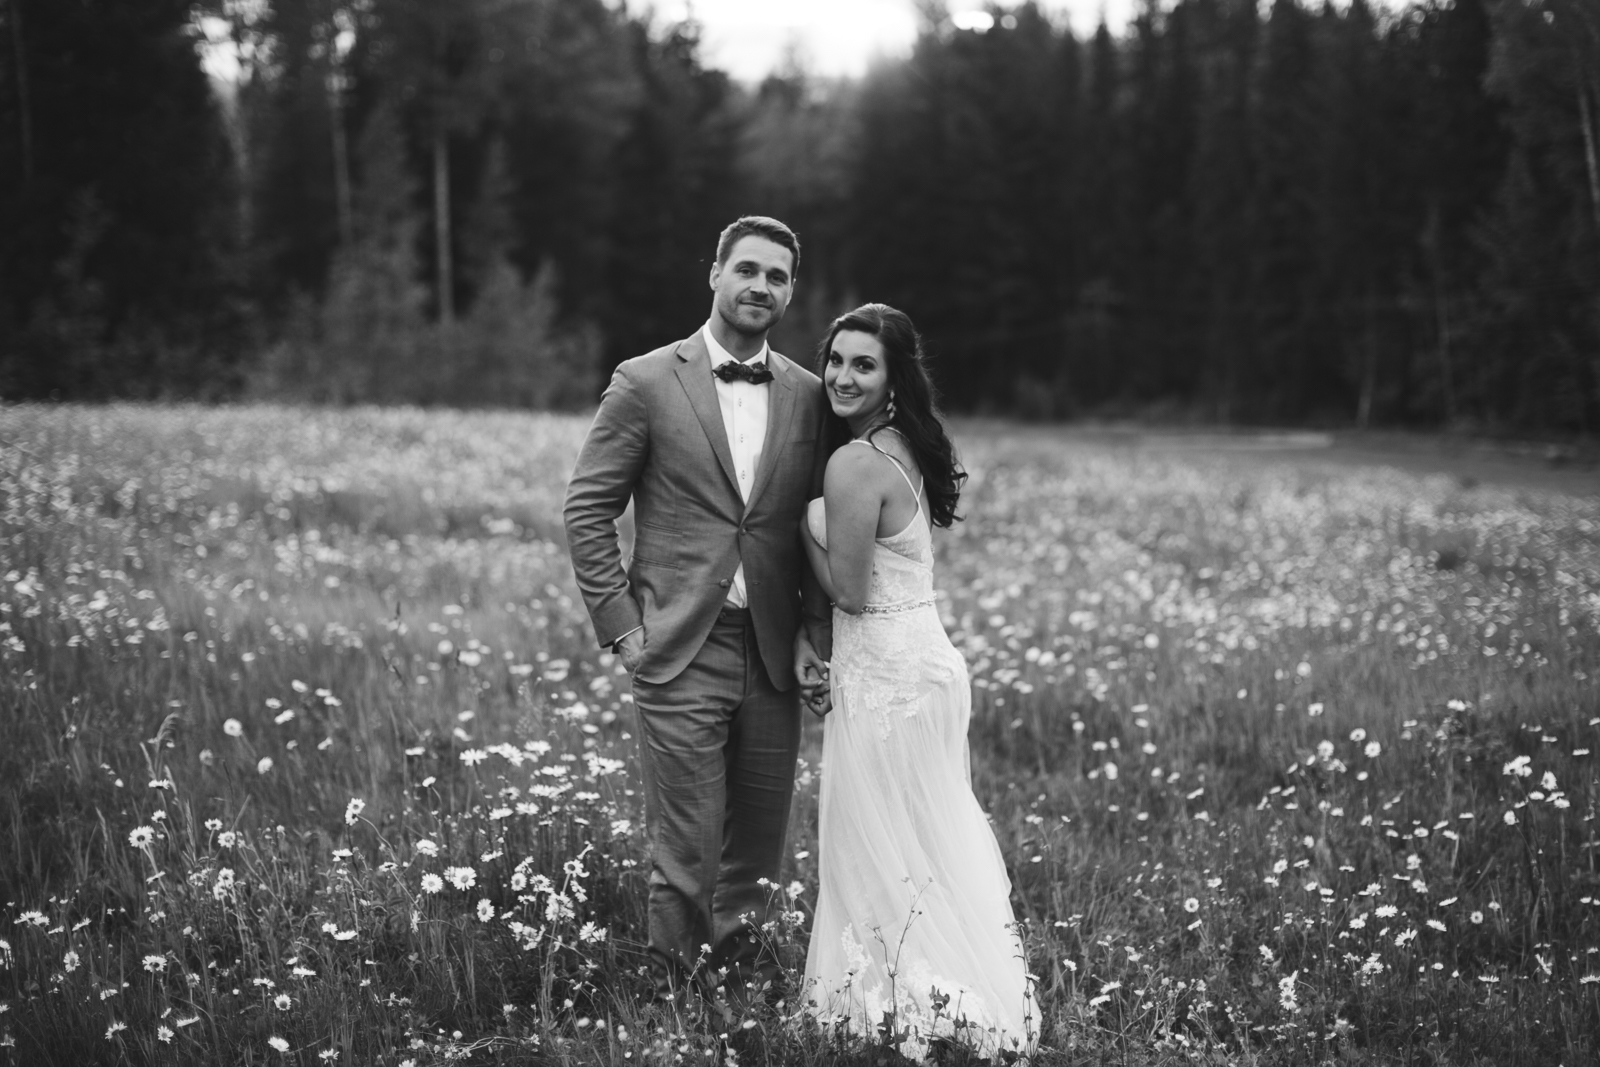 65-Willow_and_Wolf_Photography_Brittany_and_Darren_Golden_Wedding_Blog235Willow_and_Wolf_Photography_Brittany_and_Darren_Golden_Wedding_Portraits-ATP_3175